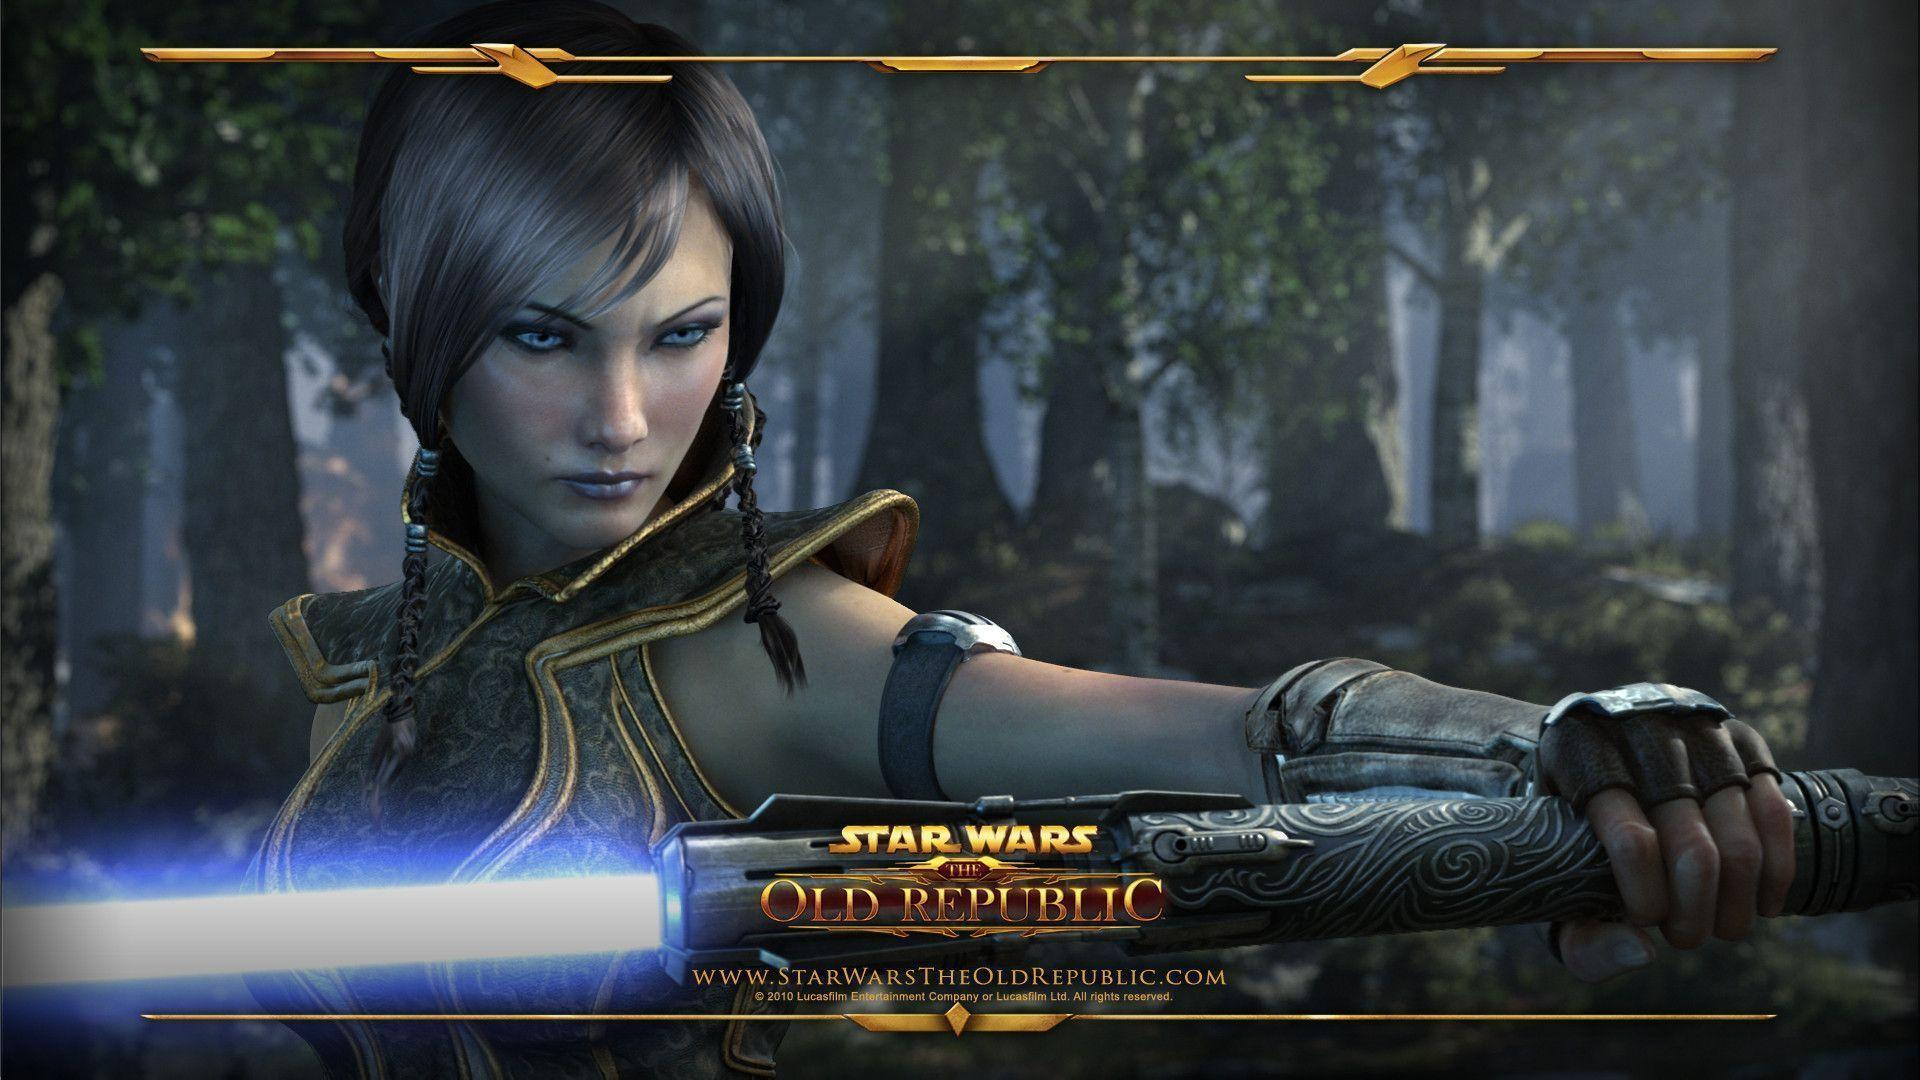 Star War The Old Republic Wallpaper: SWTOR Wallpapers 1920x1080